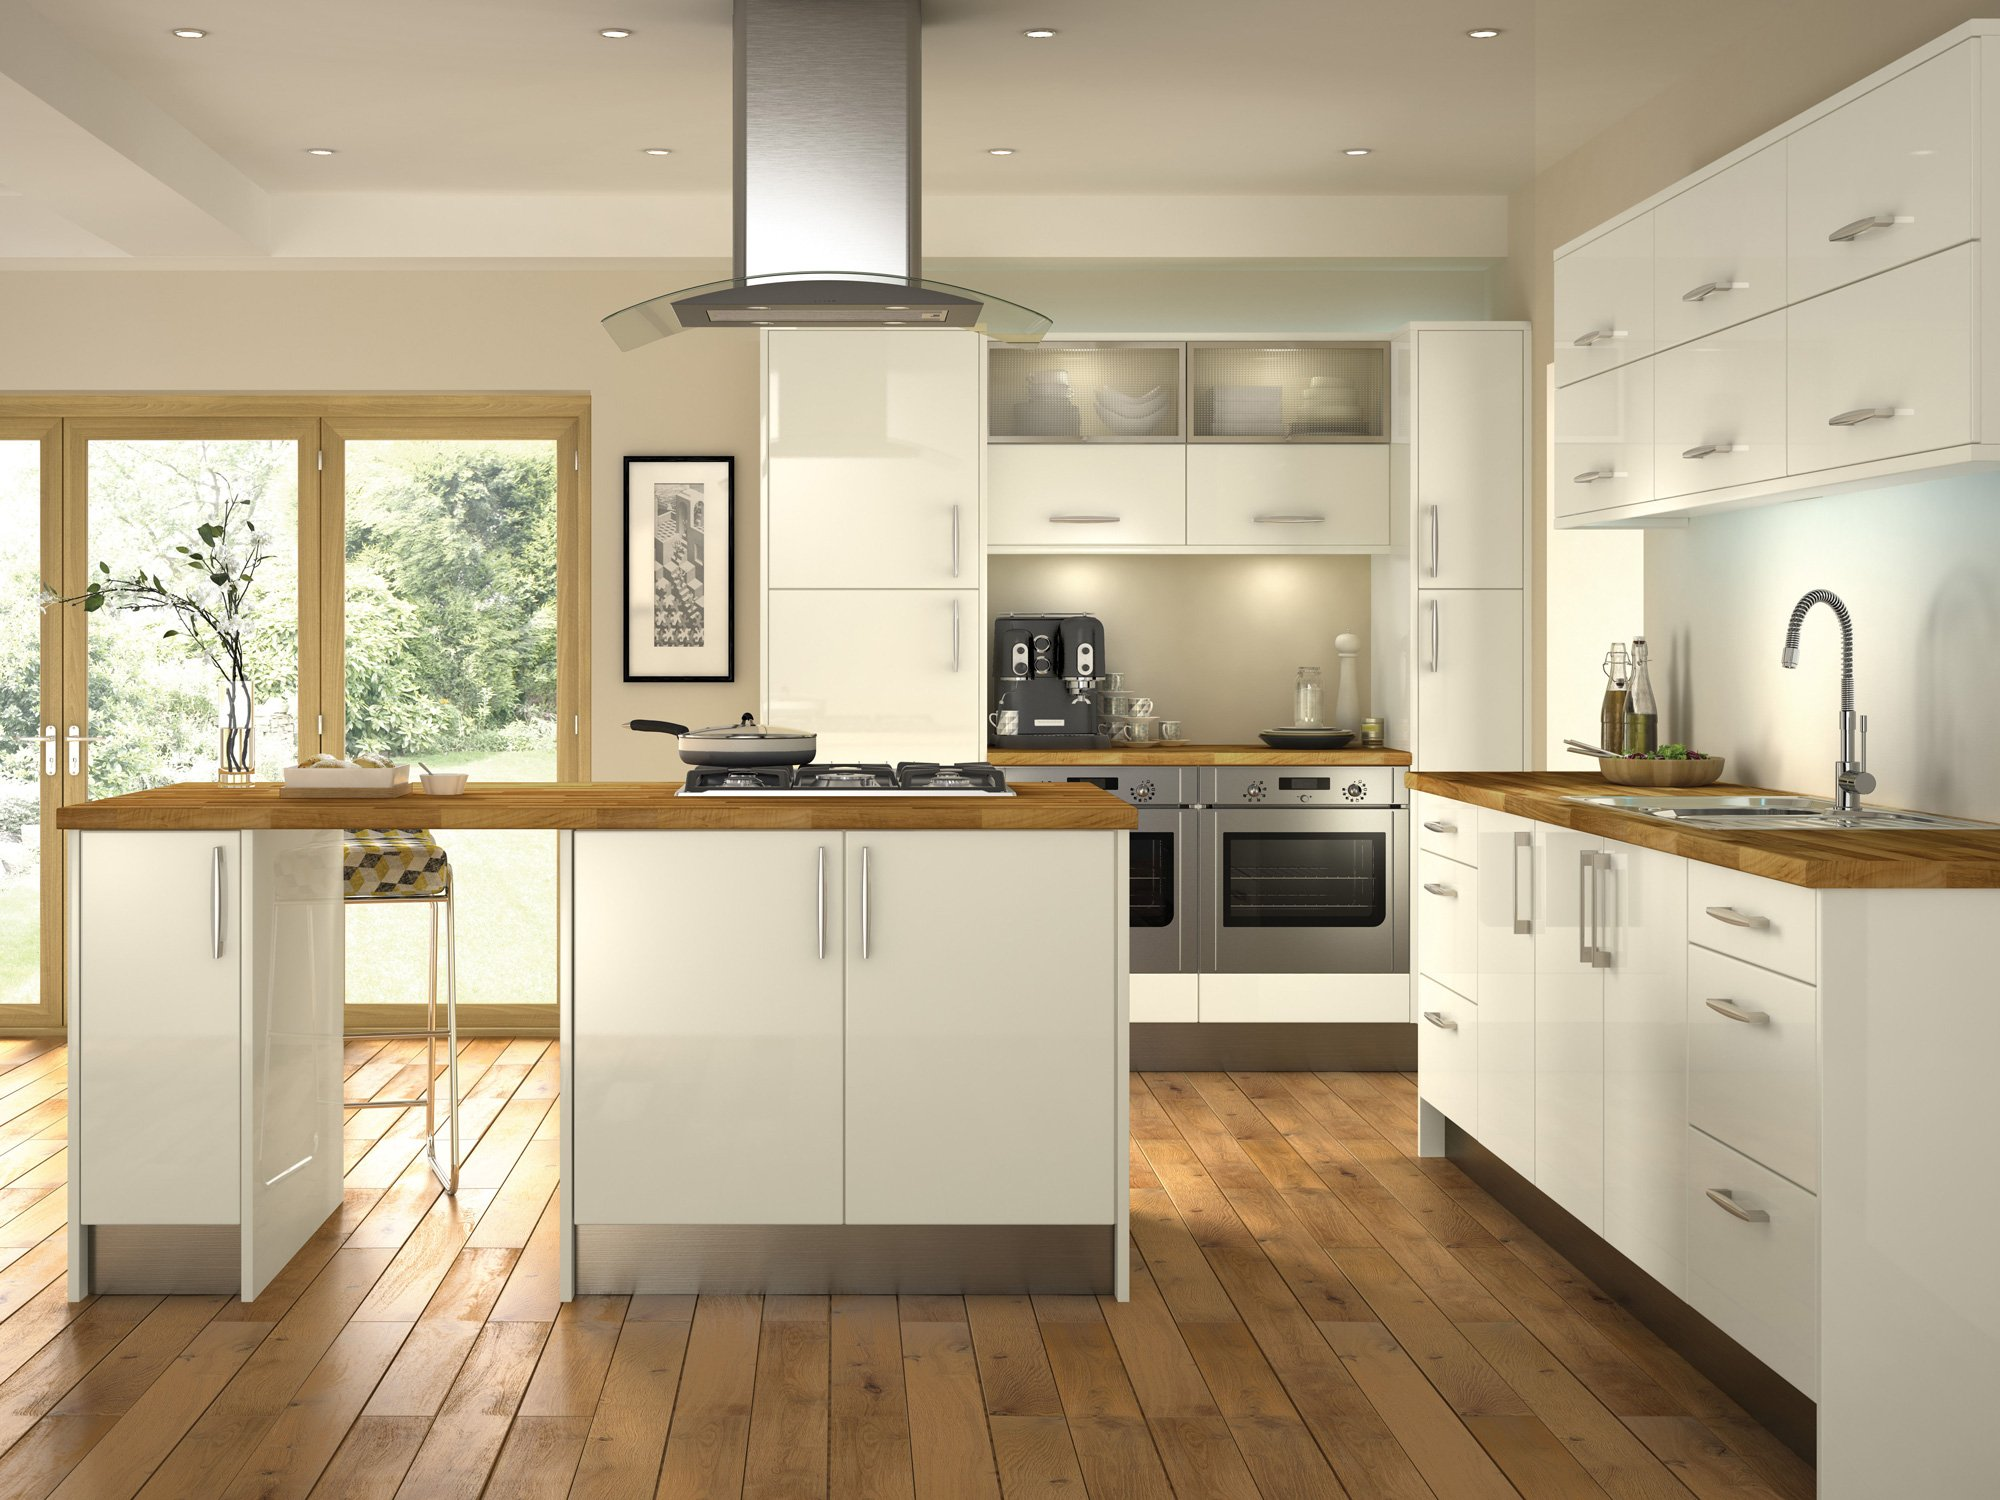 UK made rigid kitchens | We Supply Kitchens